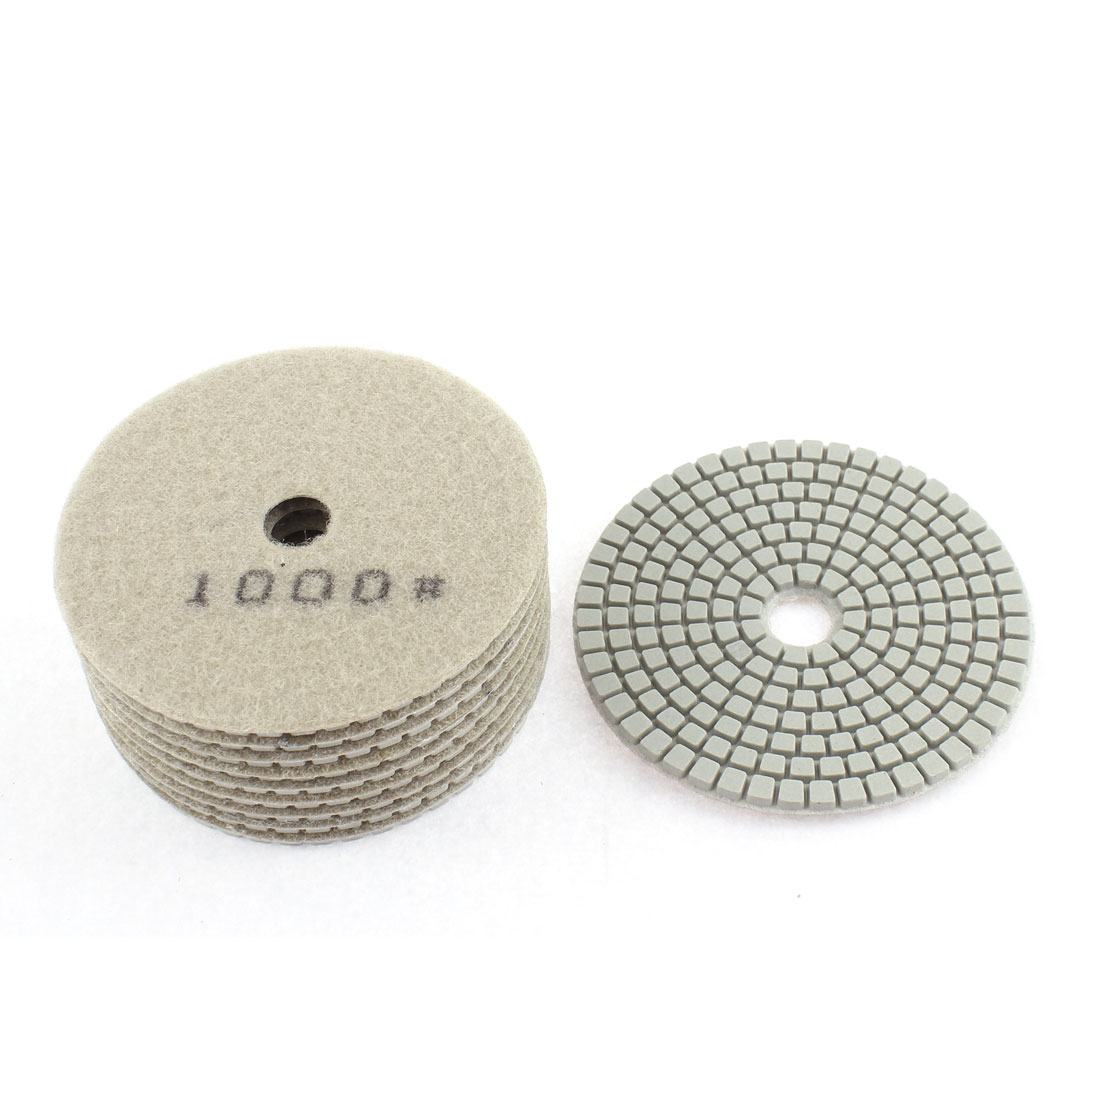 Diamond Polishing Pads for Granite Marble Concrete 1000 Grit 100mm Diameter 10 Pcs